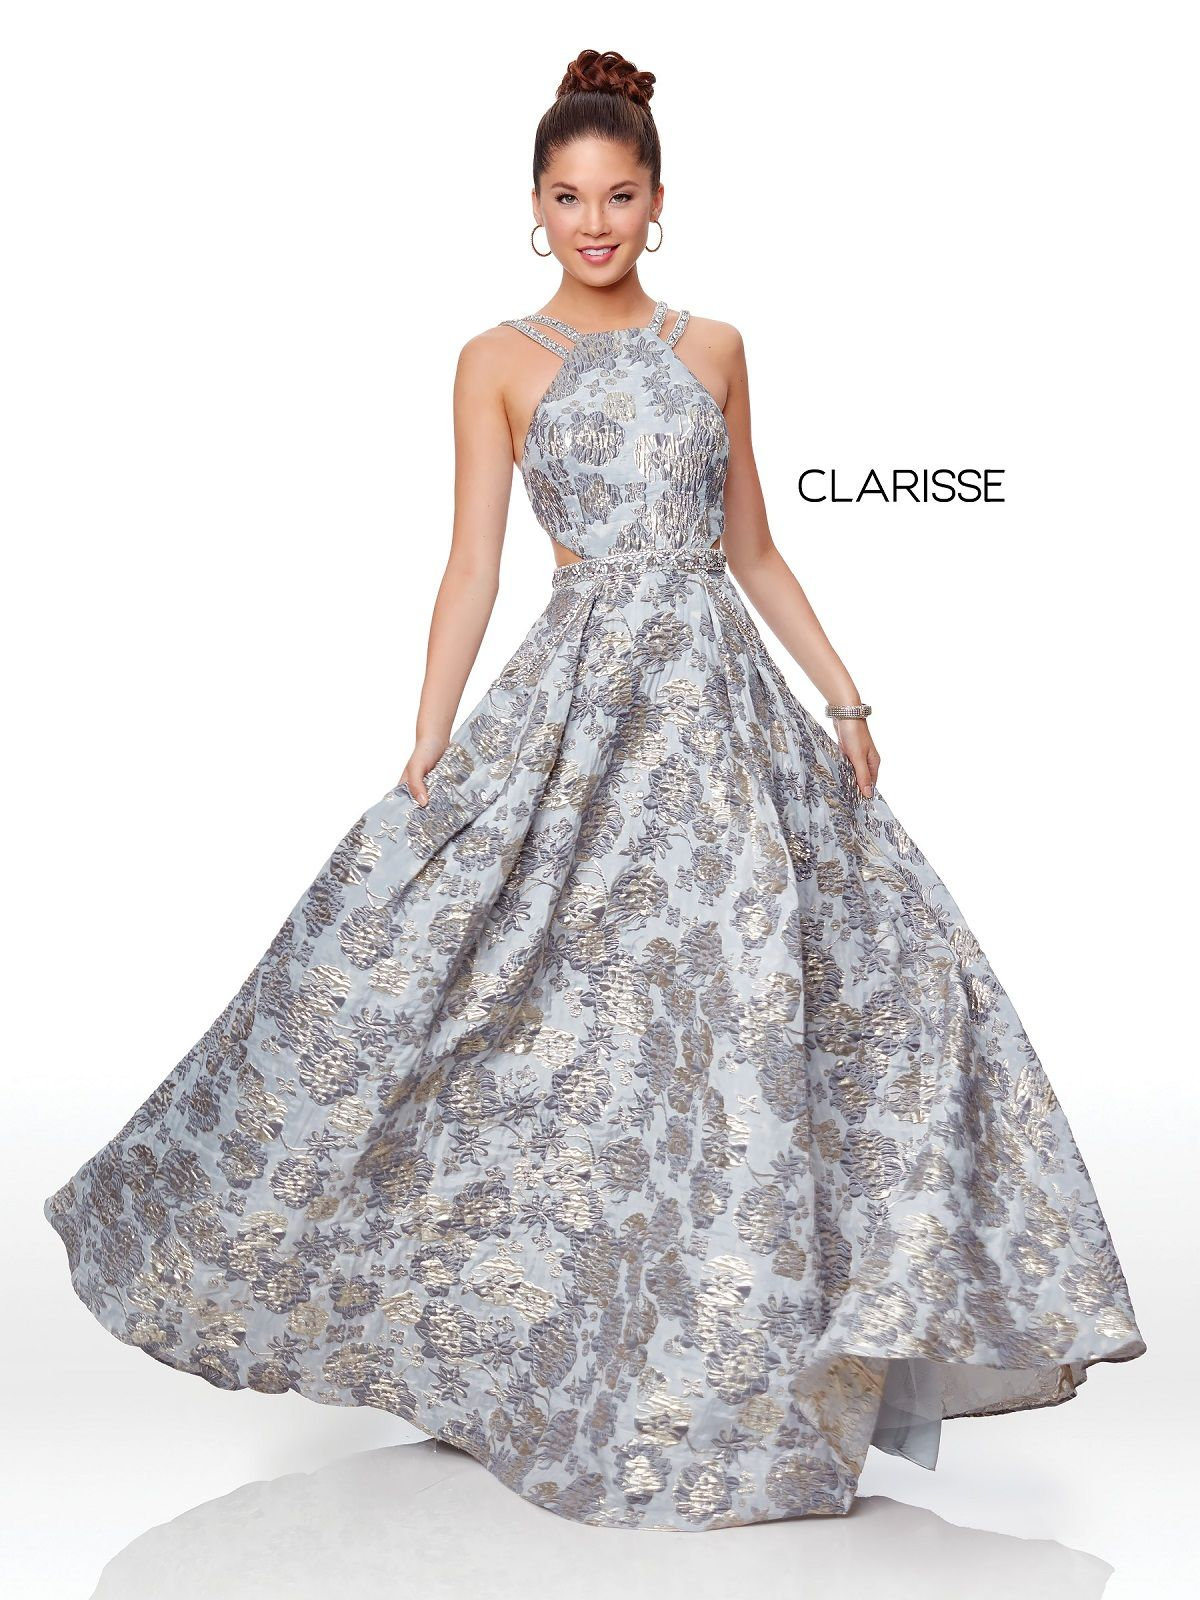 ae4ced8490 Clarisse Couture 5058 Silver Floral Brocade Ball Gown